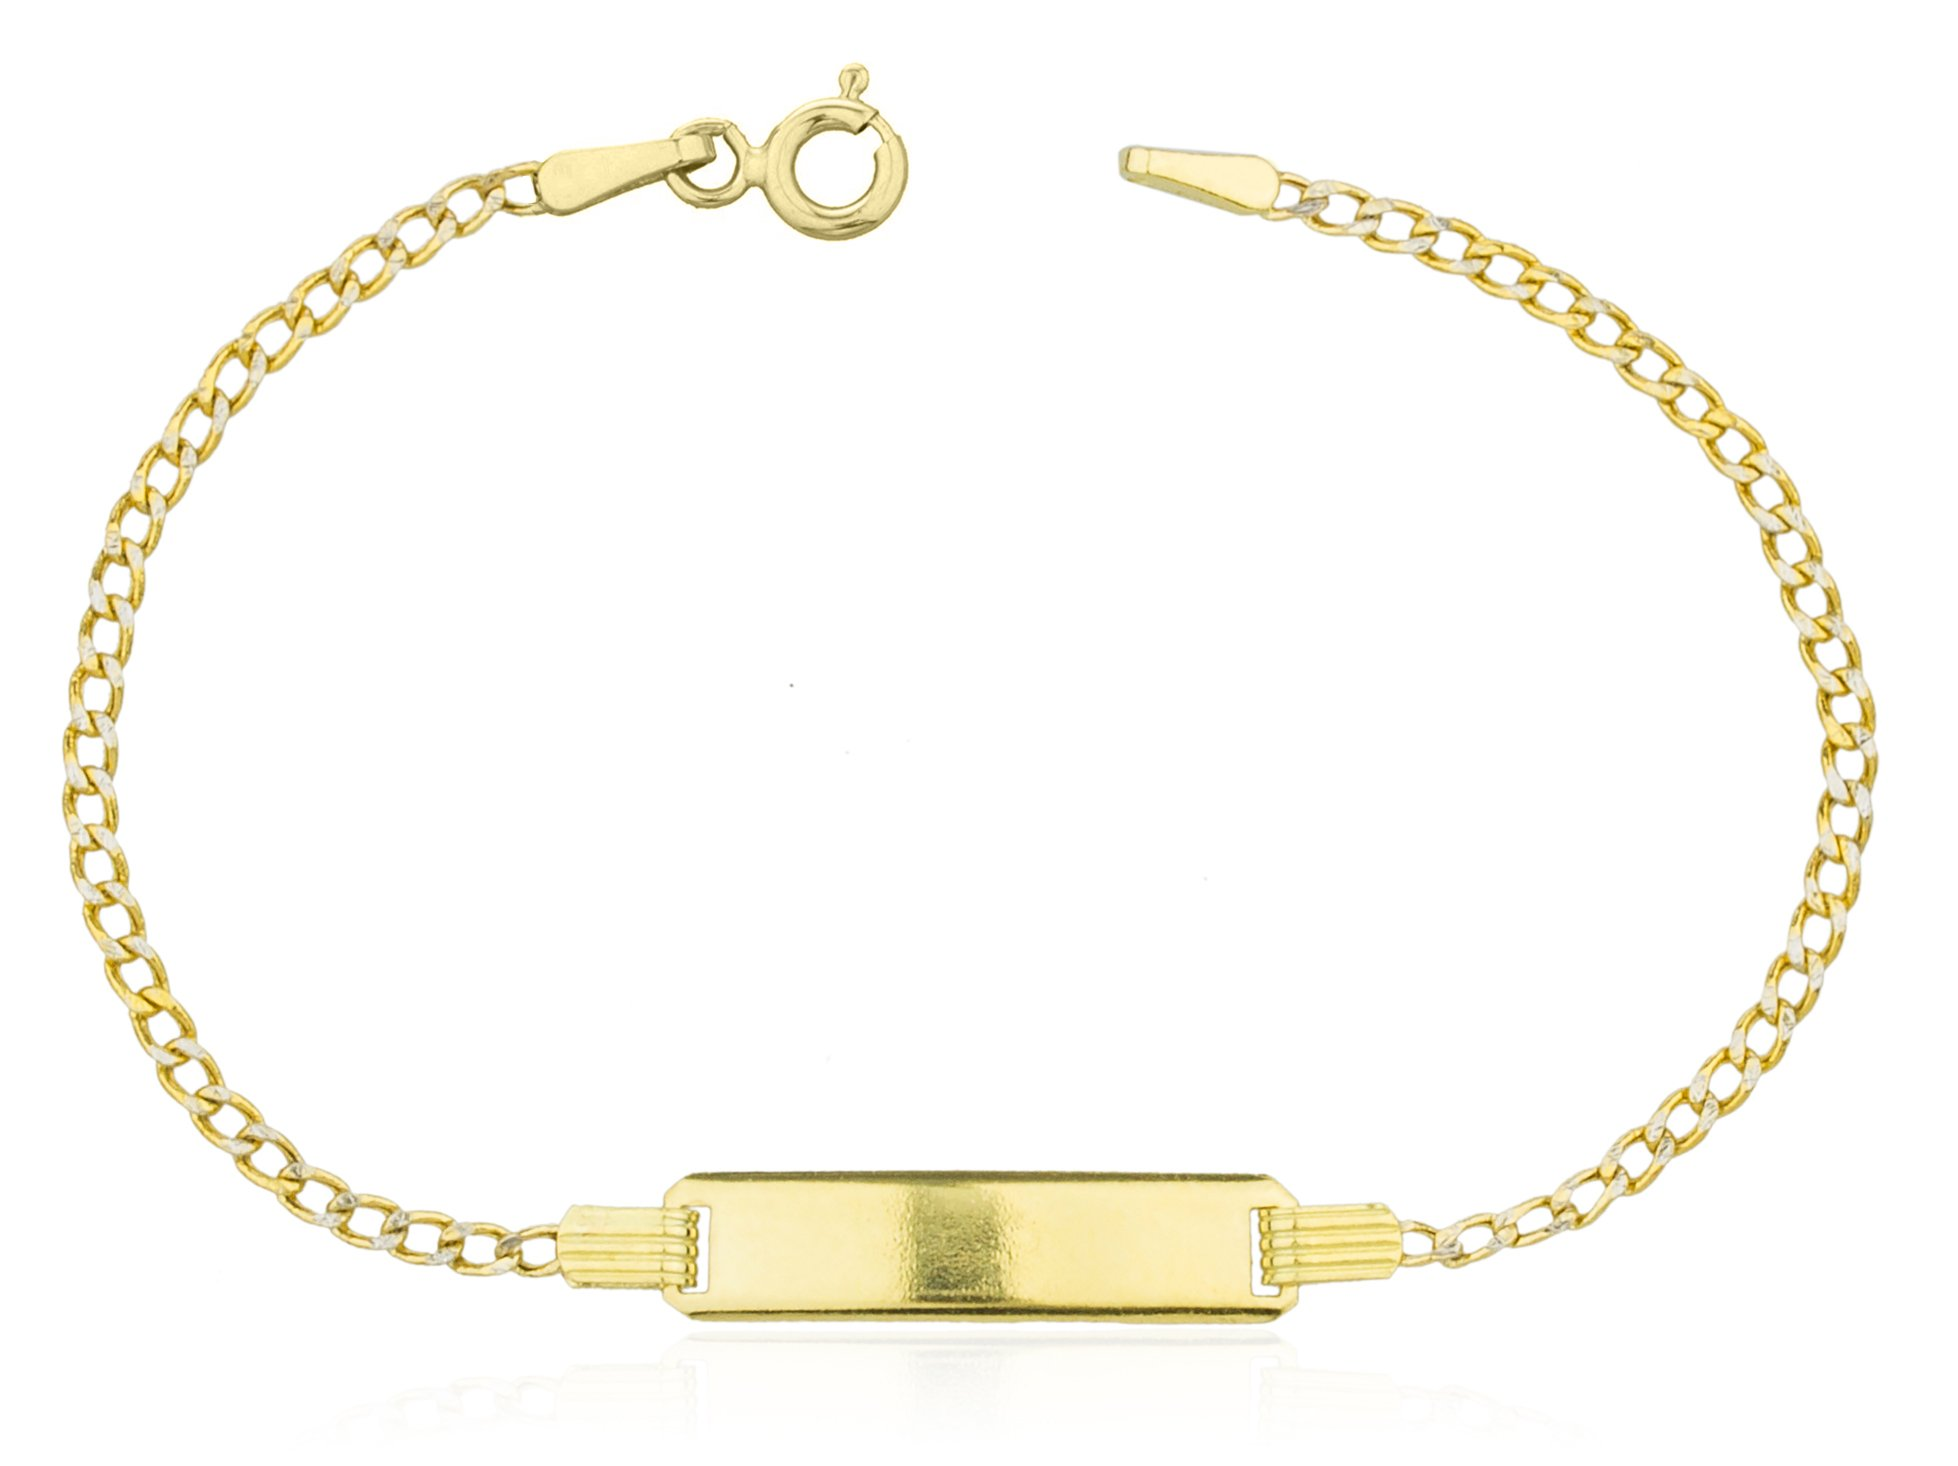 14K Gold 6 Inch Baby Id Pave Cuban Link Bracelet (GO-1810) by JOTW